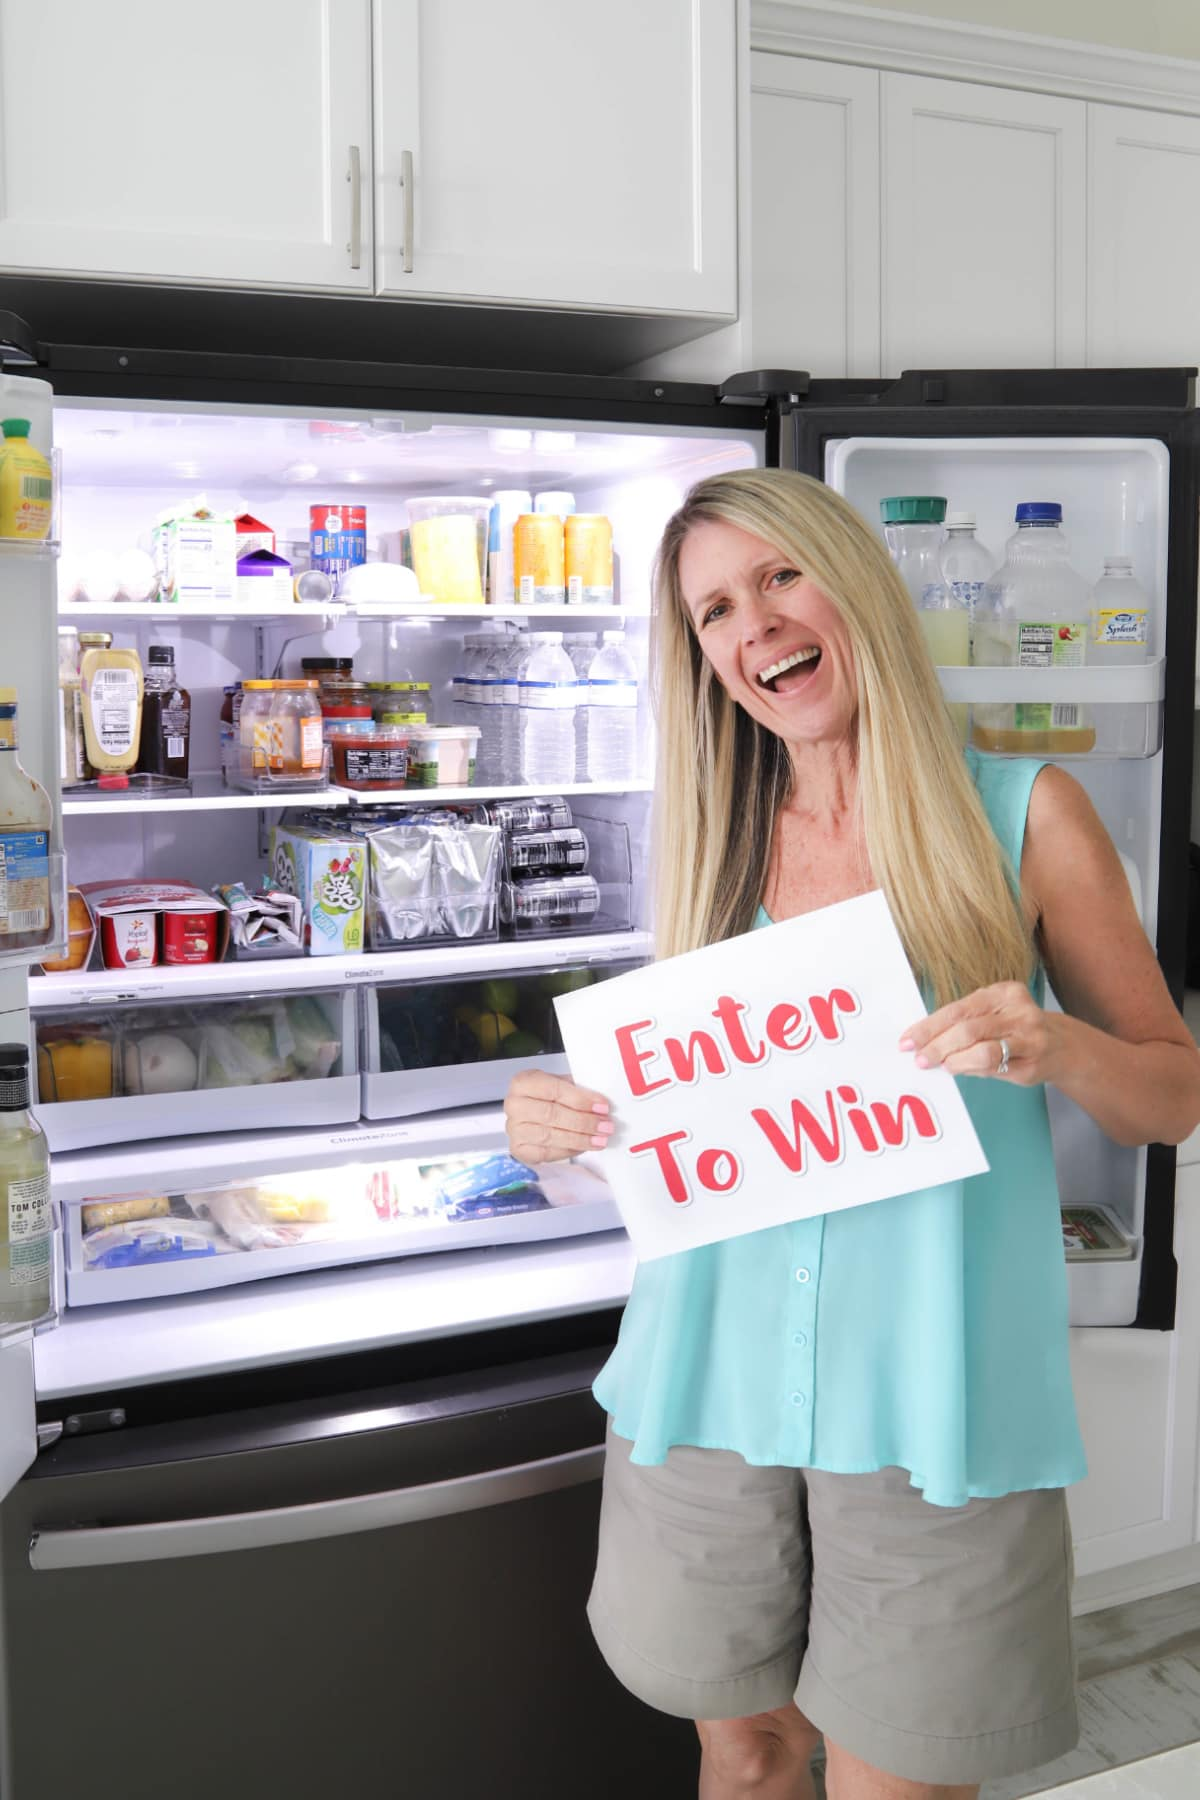 Woman holding enter to win sign in front of fridge